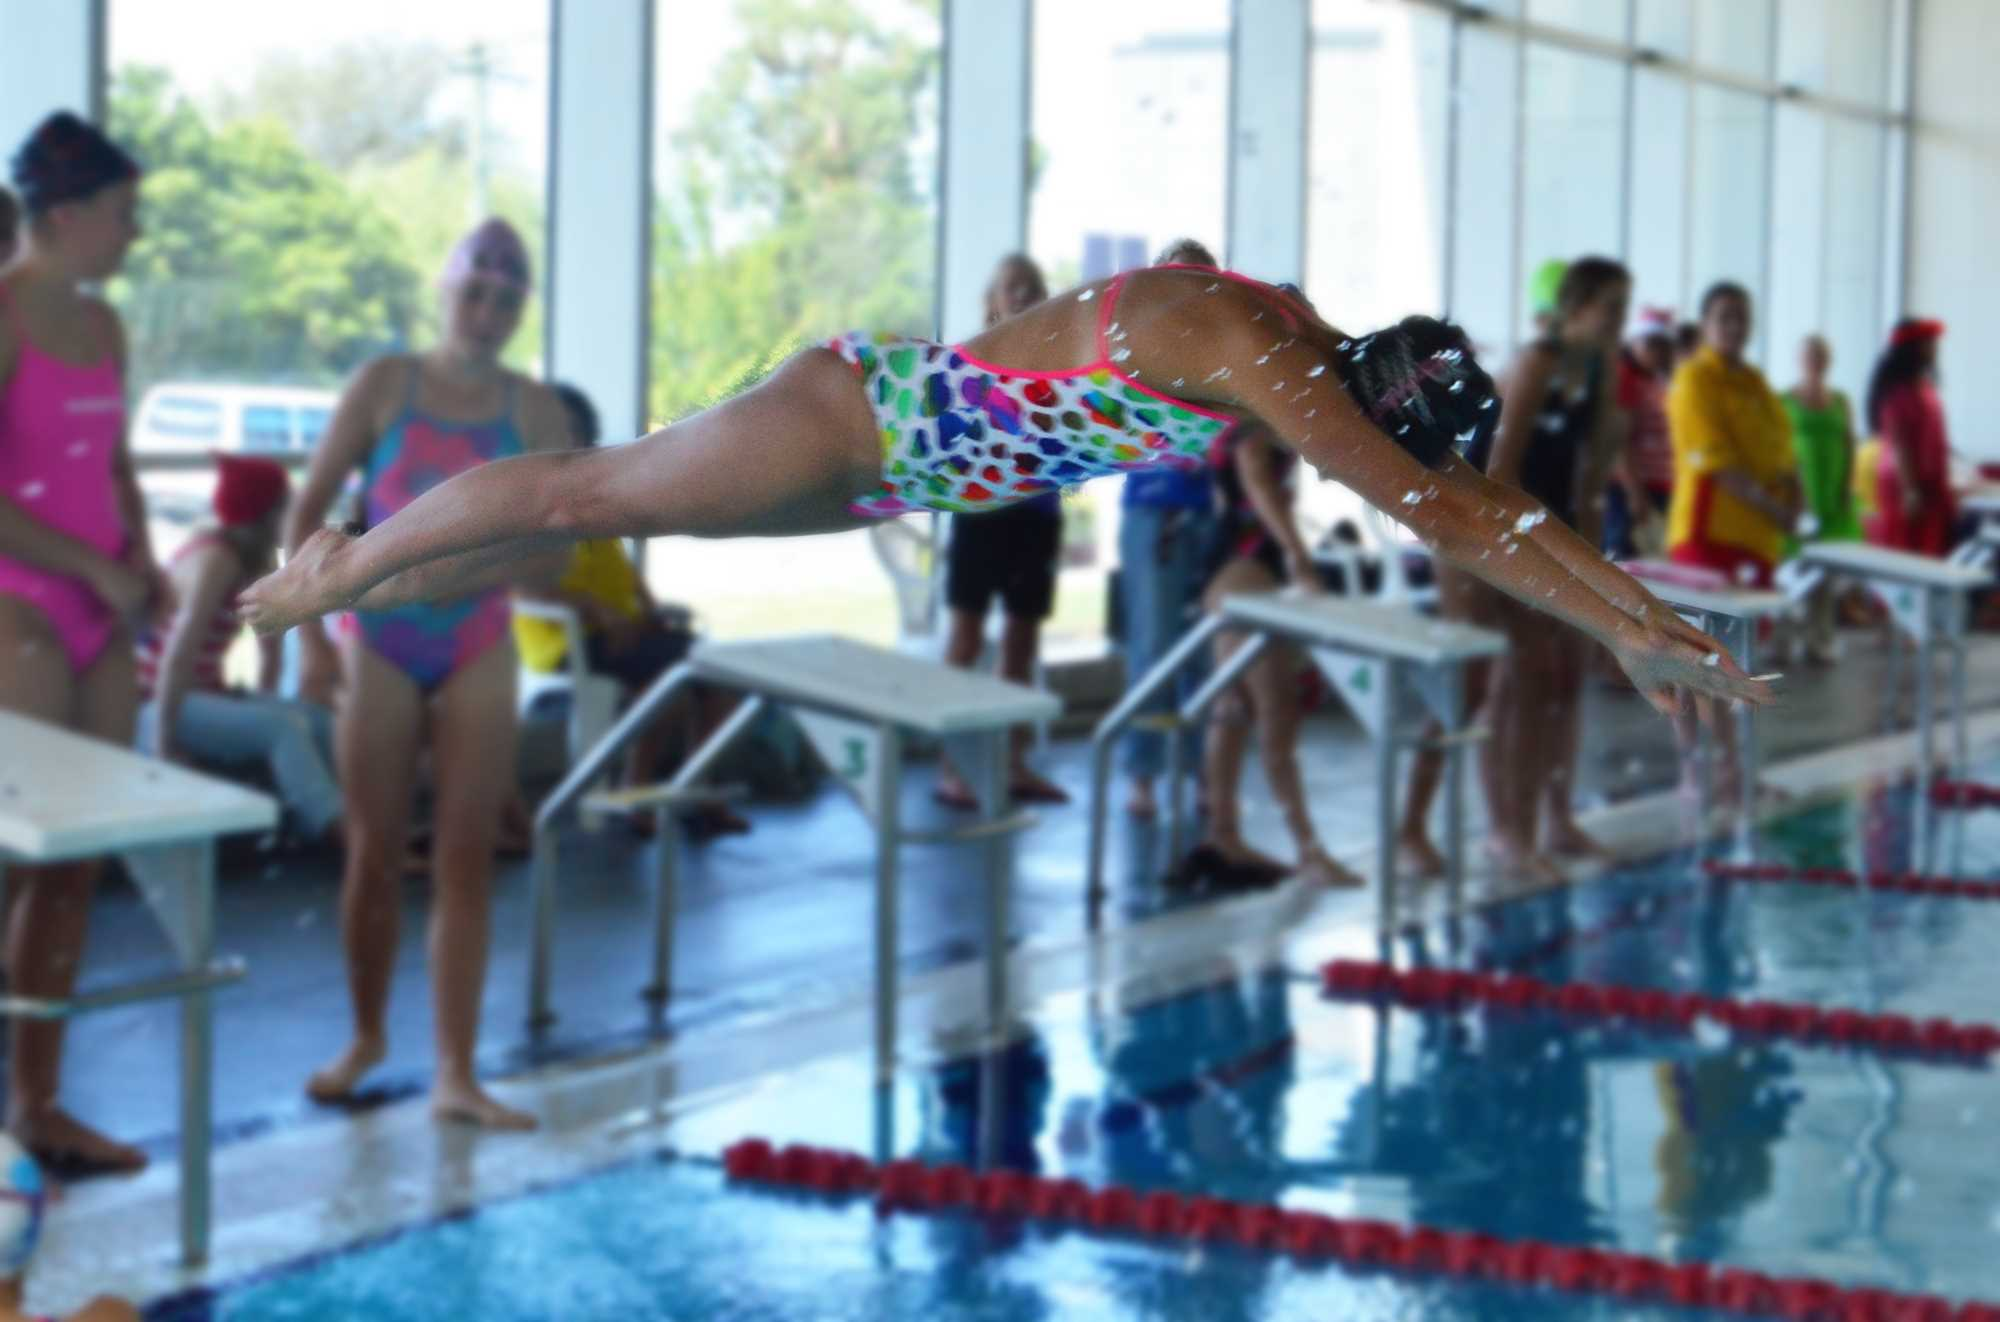 Kaylee Gets Gold For Nz Age Group Swim Team